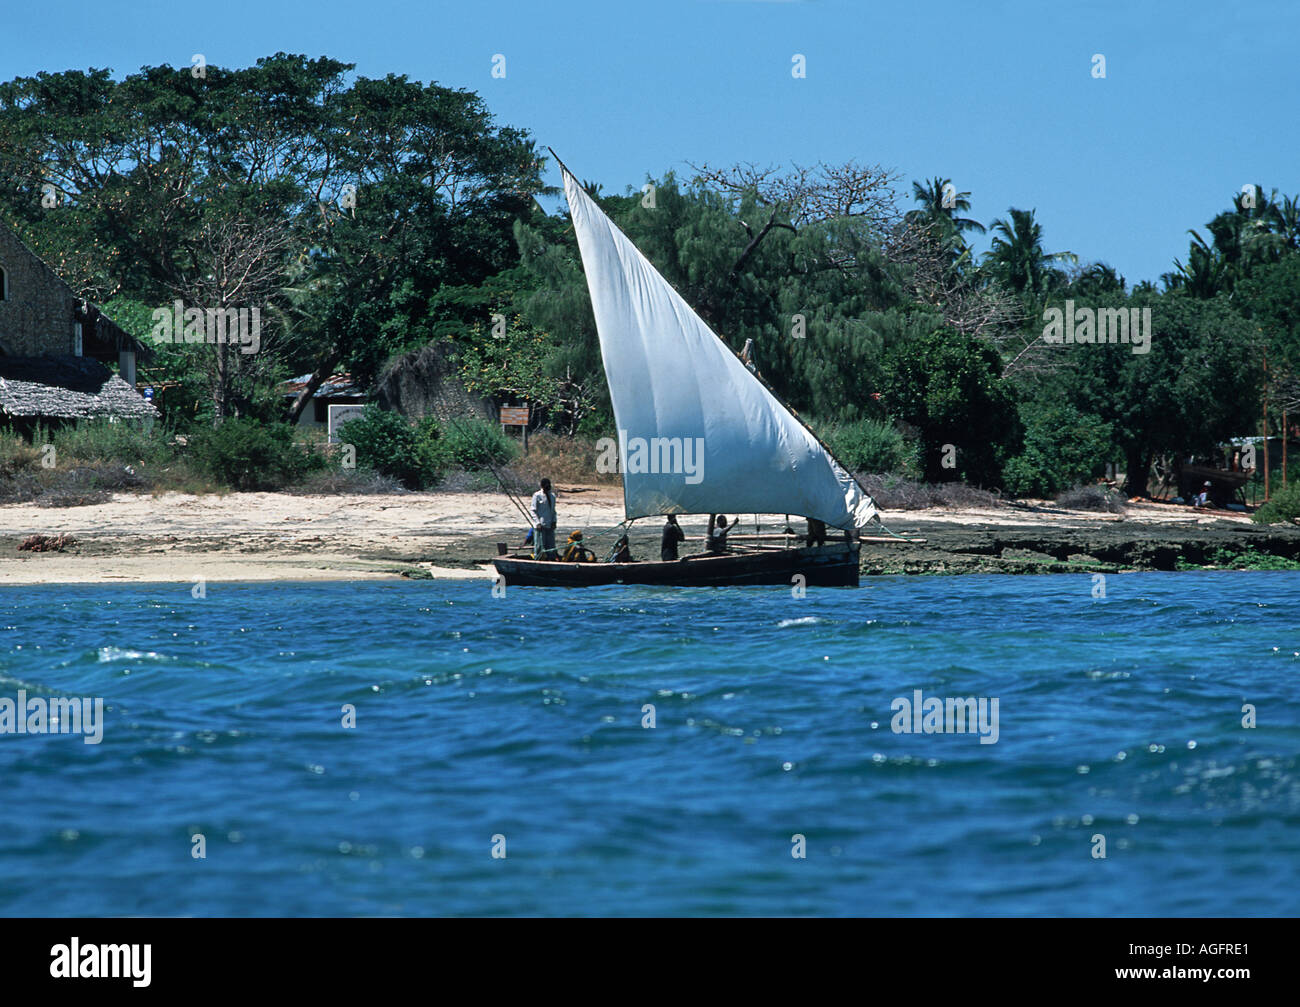 Dhow operating as a local ferry transporting people and produce between Mafia and Chole island S of Zanzibar Tanzania E Africa - Stock Image